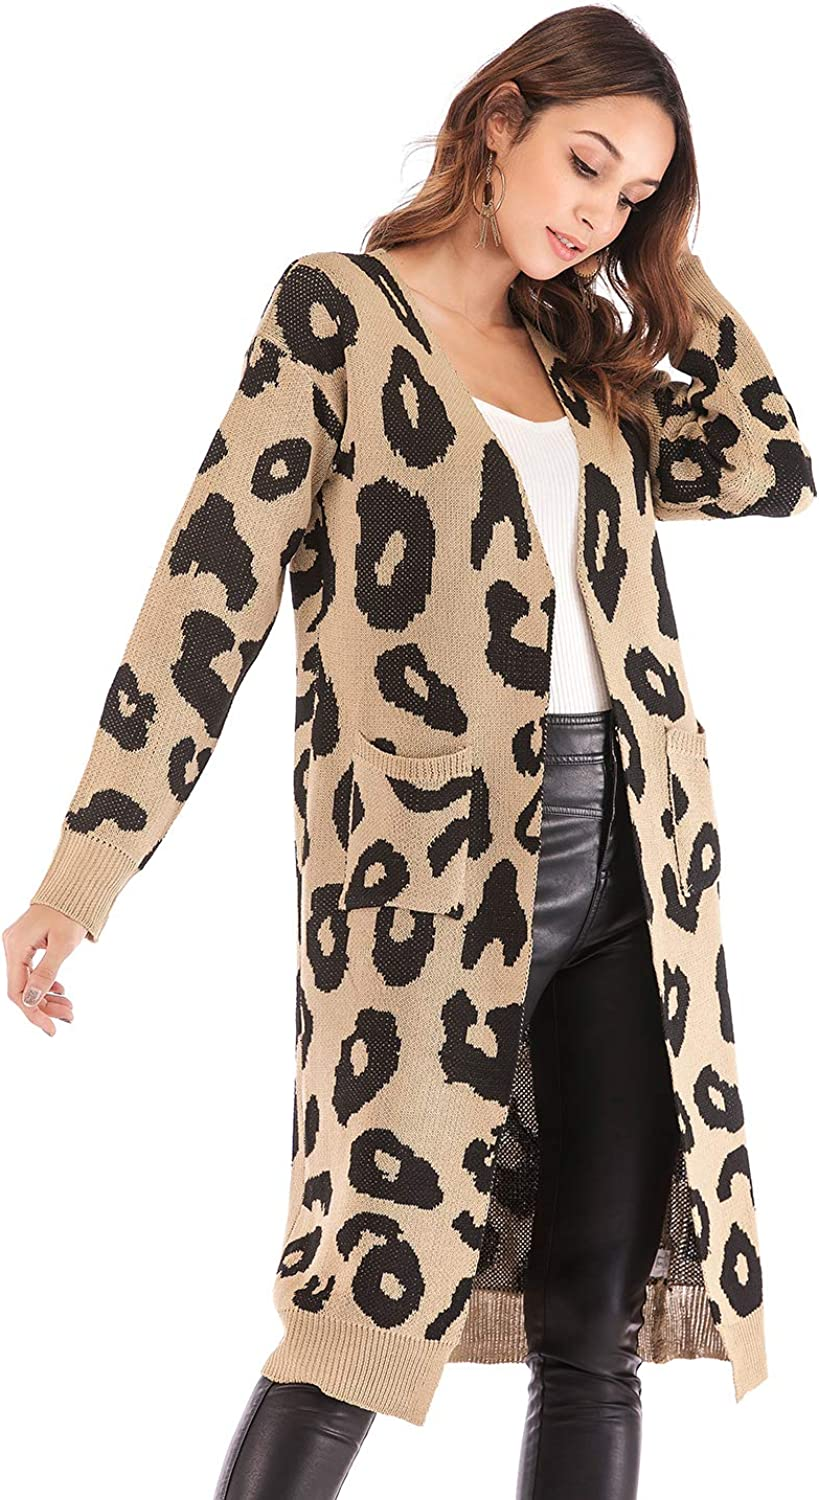 AEL Women's Long Sleeves Print Knitting Cardigan Casual Open Front Warm Sweater Outwear Coats with Pocket